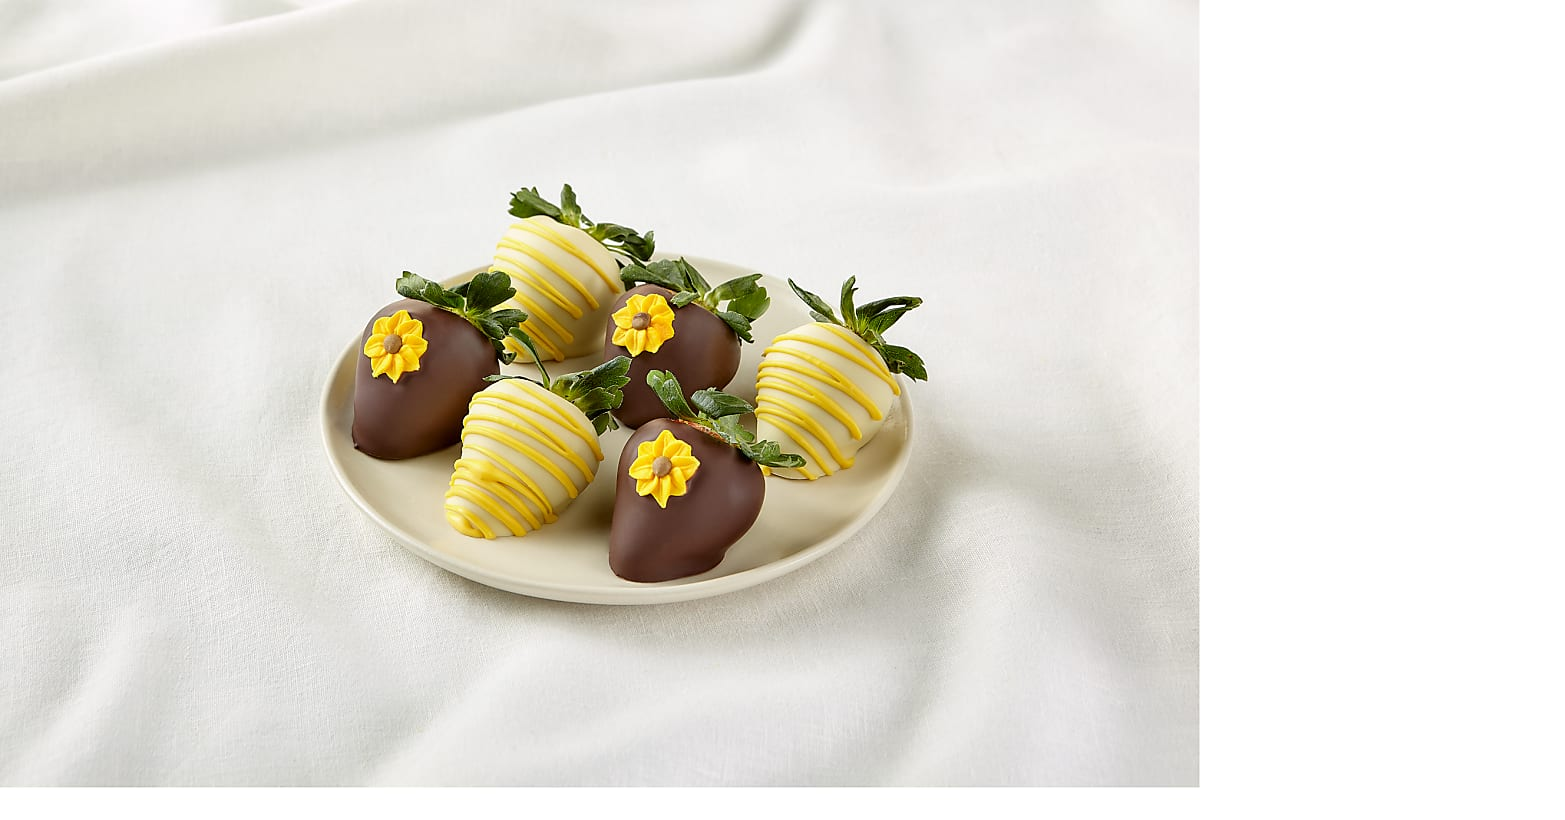 Half Dozen Sunny Days Belgian Chocolate-Covered Strawberries - Image 1 Of 2